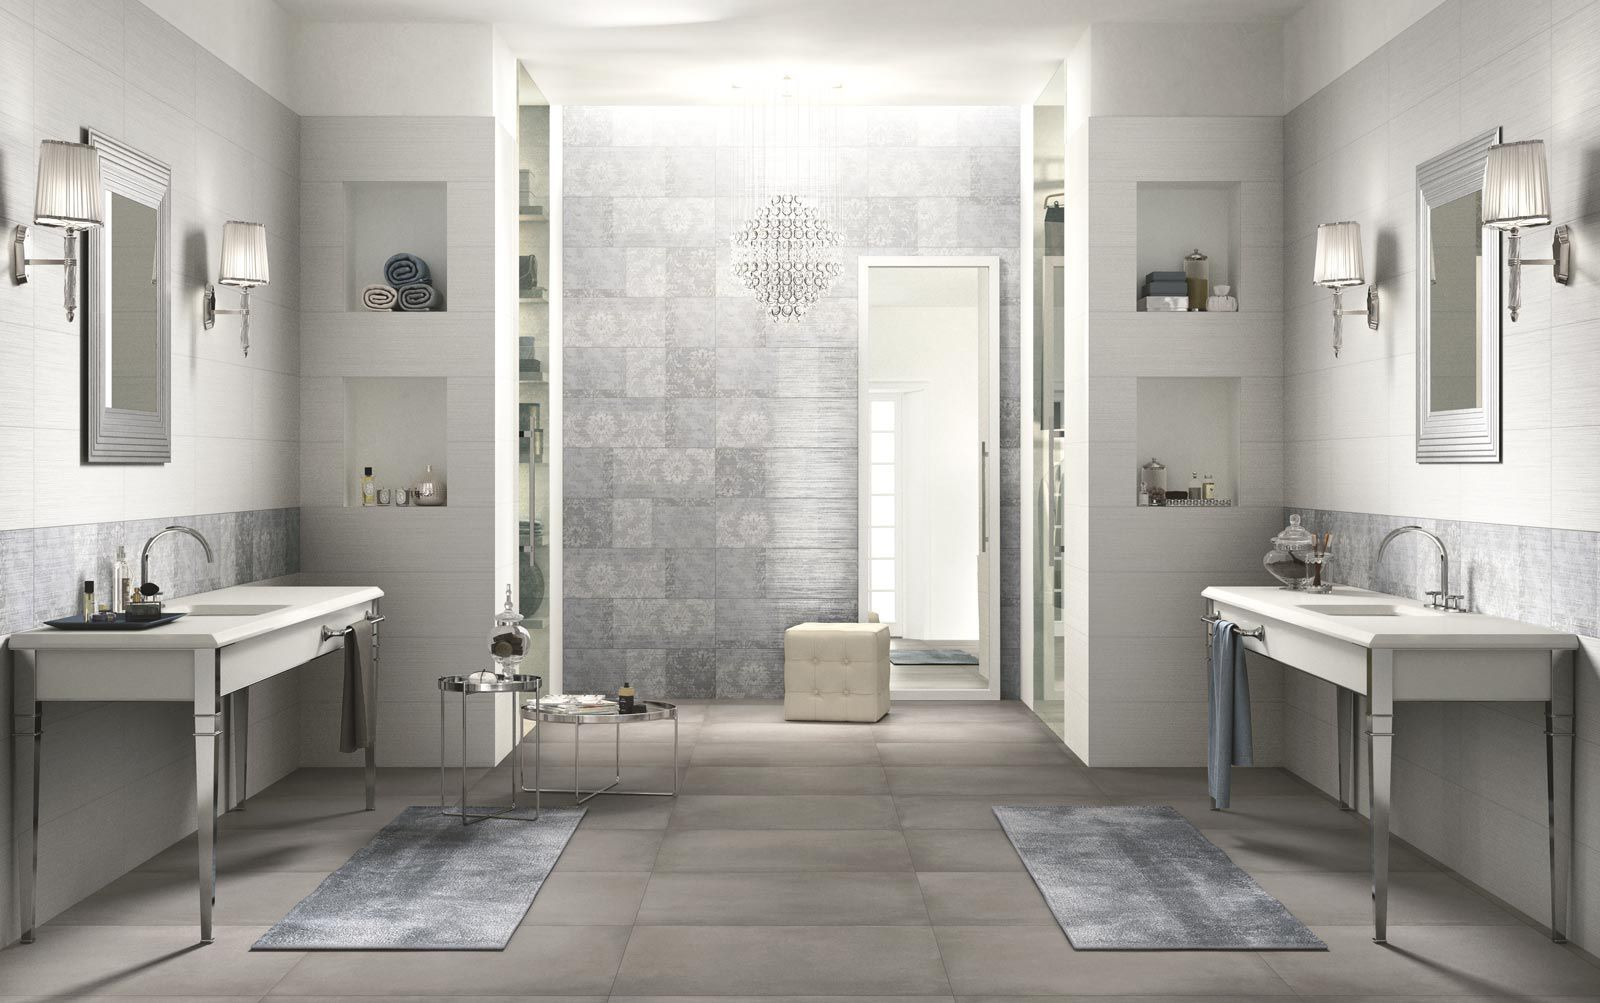 Bathroom tile / wall / ceramic / striped - WALLPAPER - Ragno